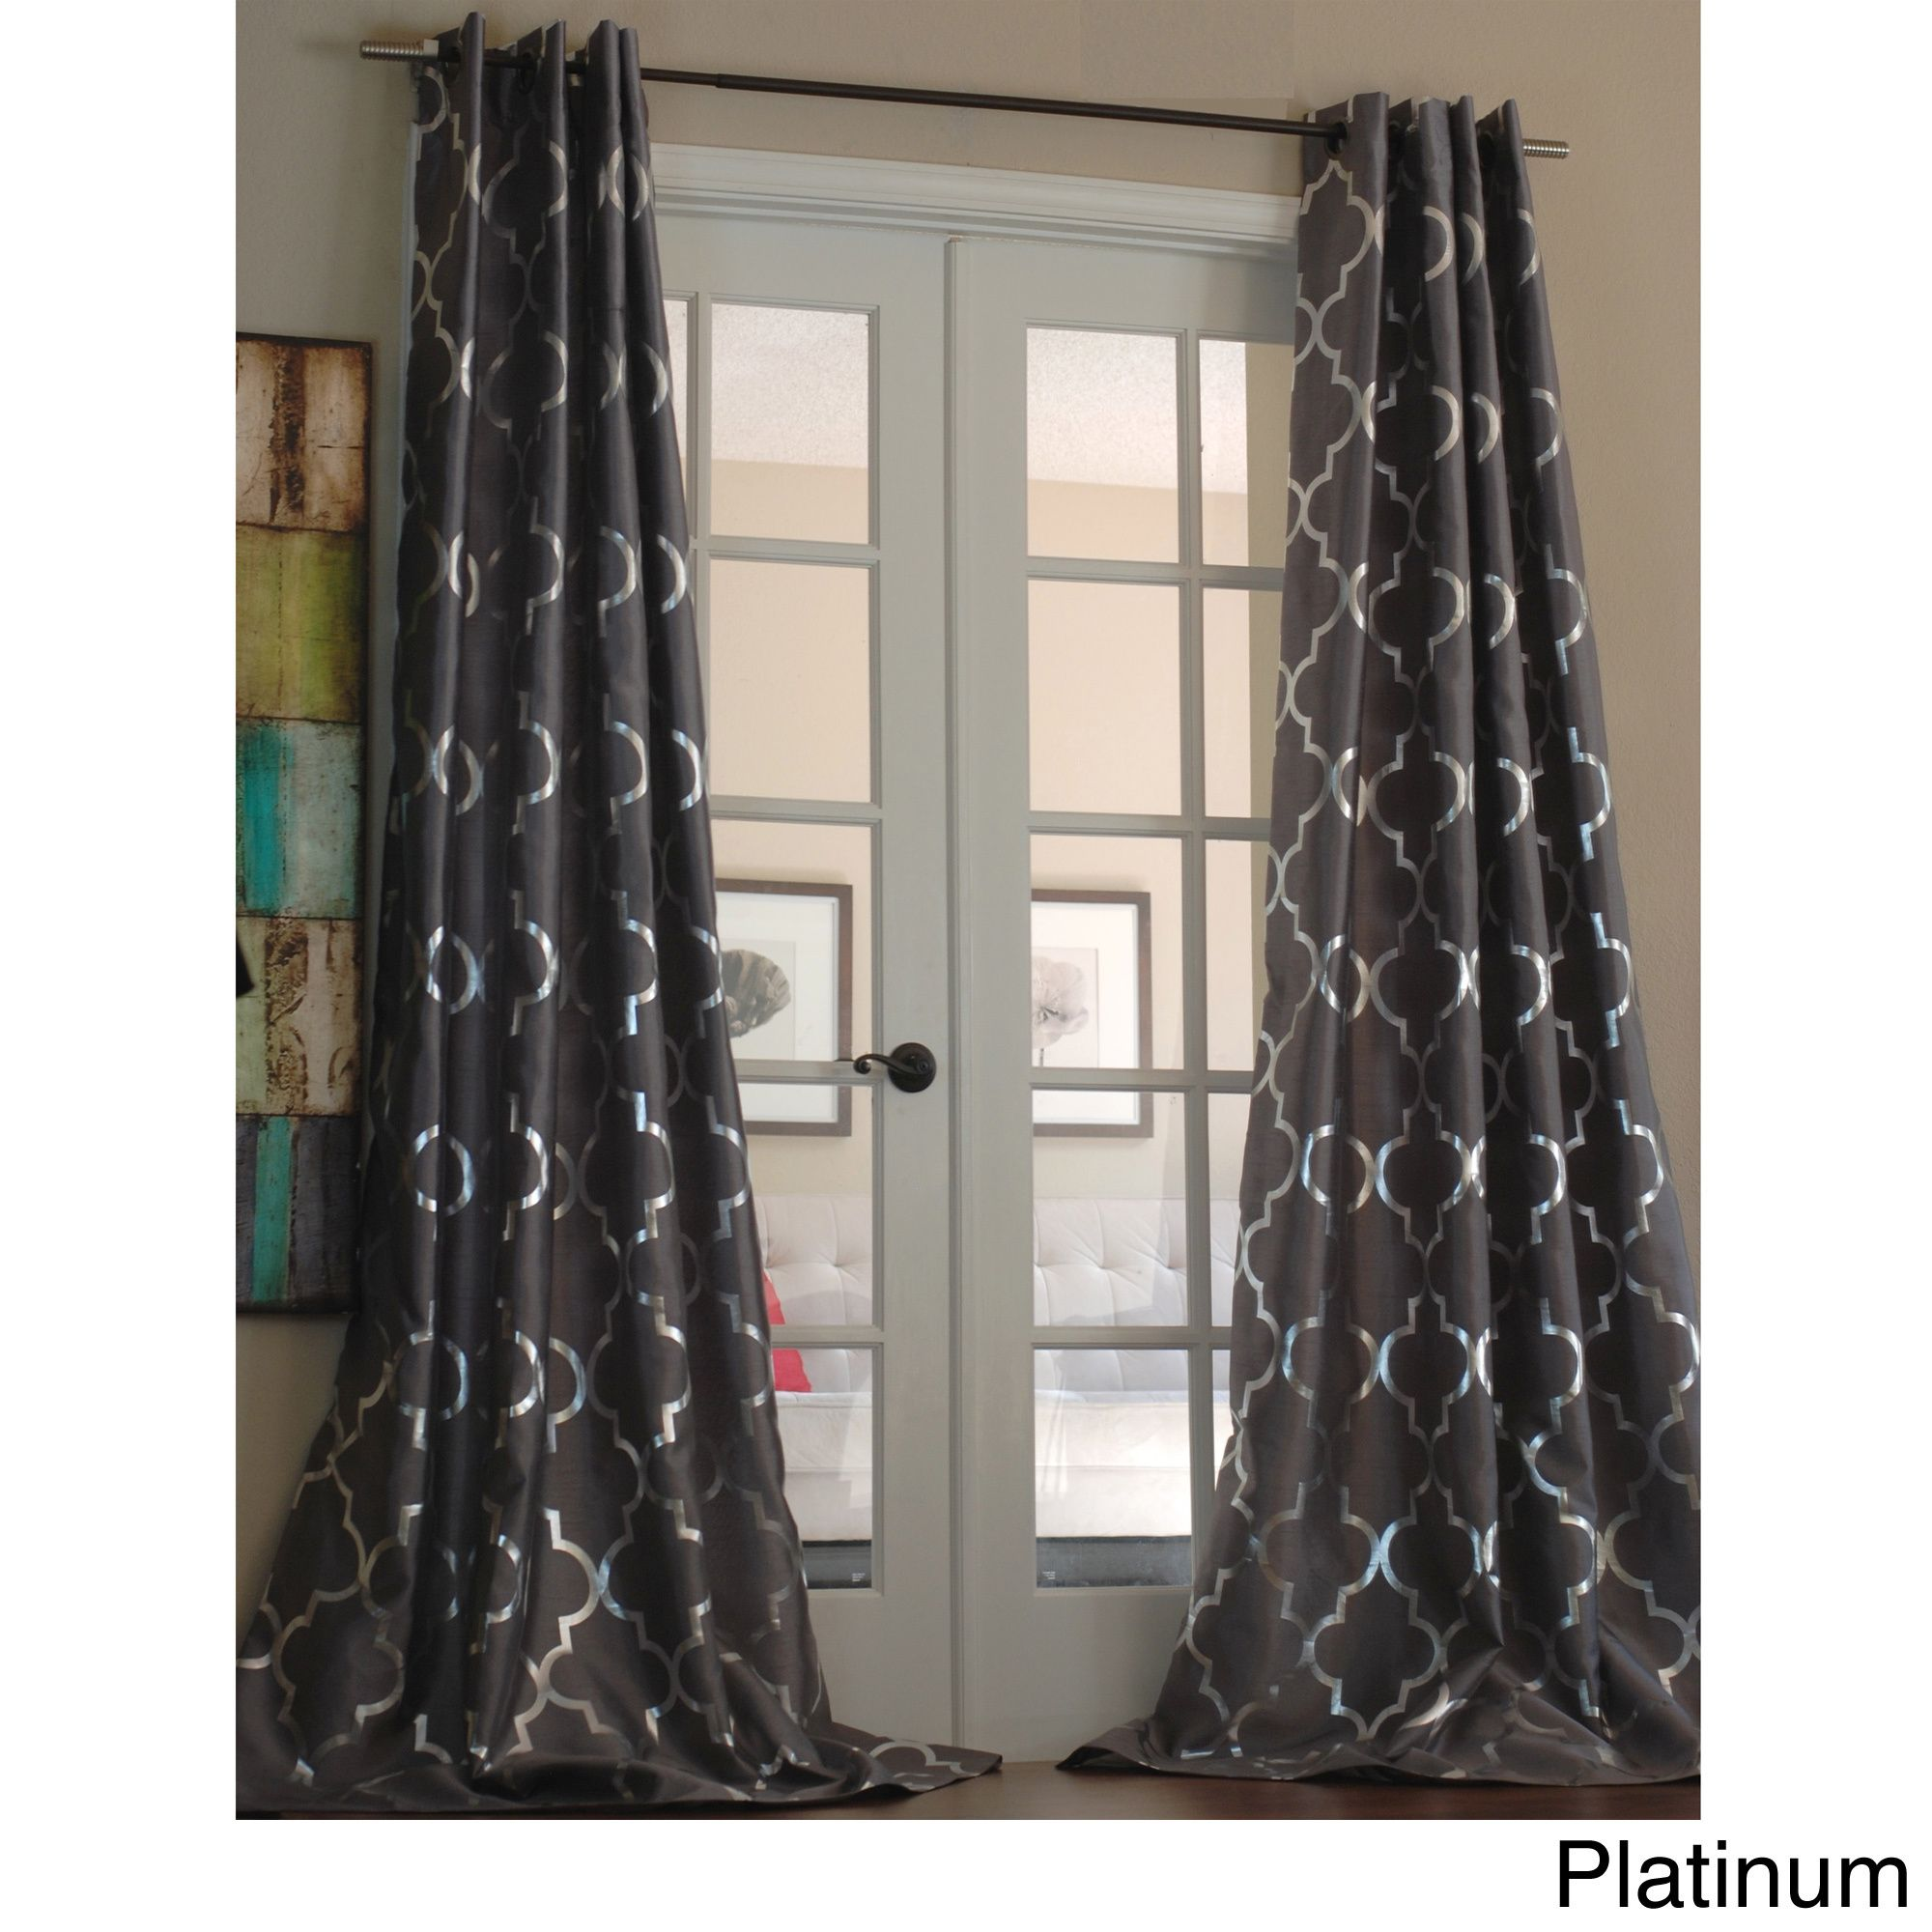 rare trellis design patternsheer pairing sheer semi raretains with picture patterned curtains pattern inspirations curtain leaf grommet this and top